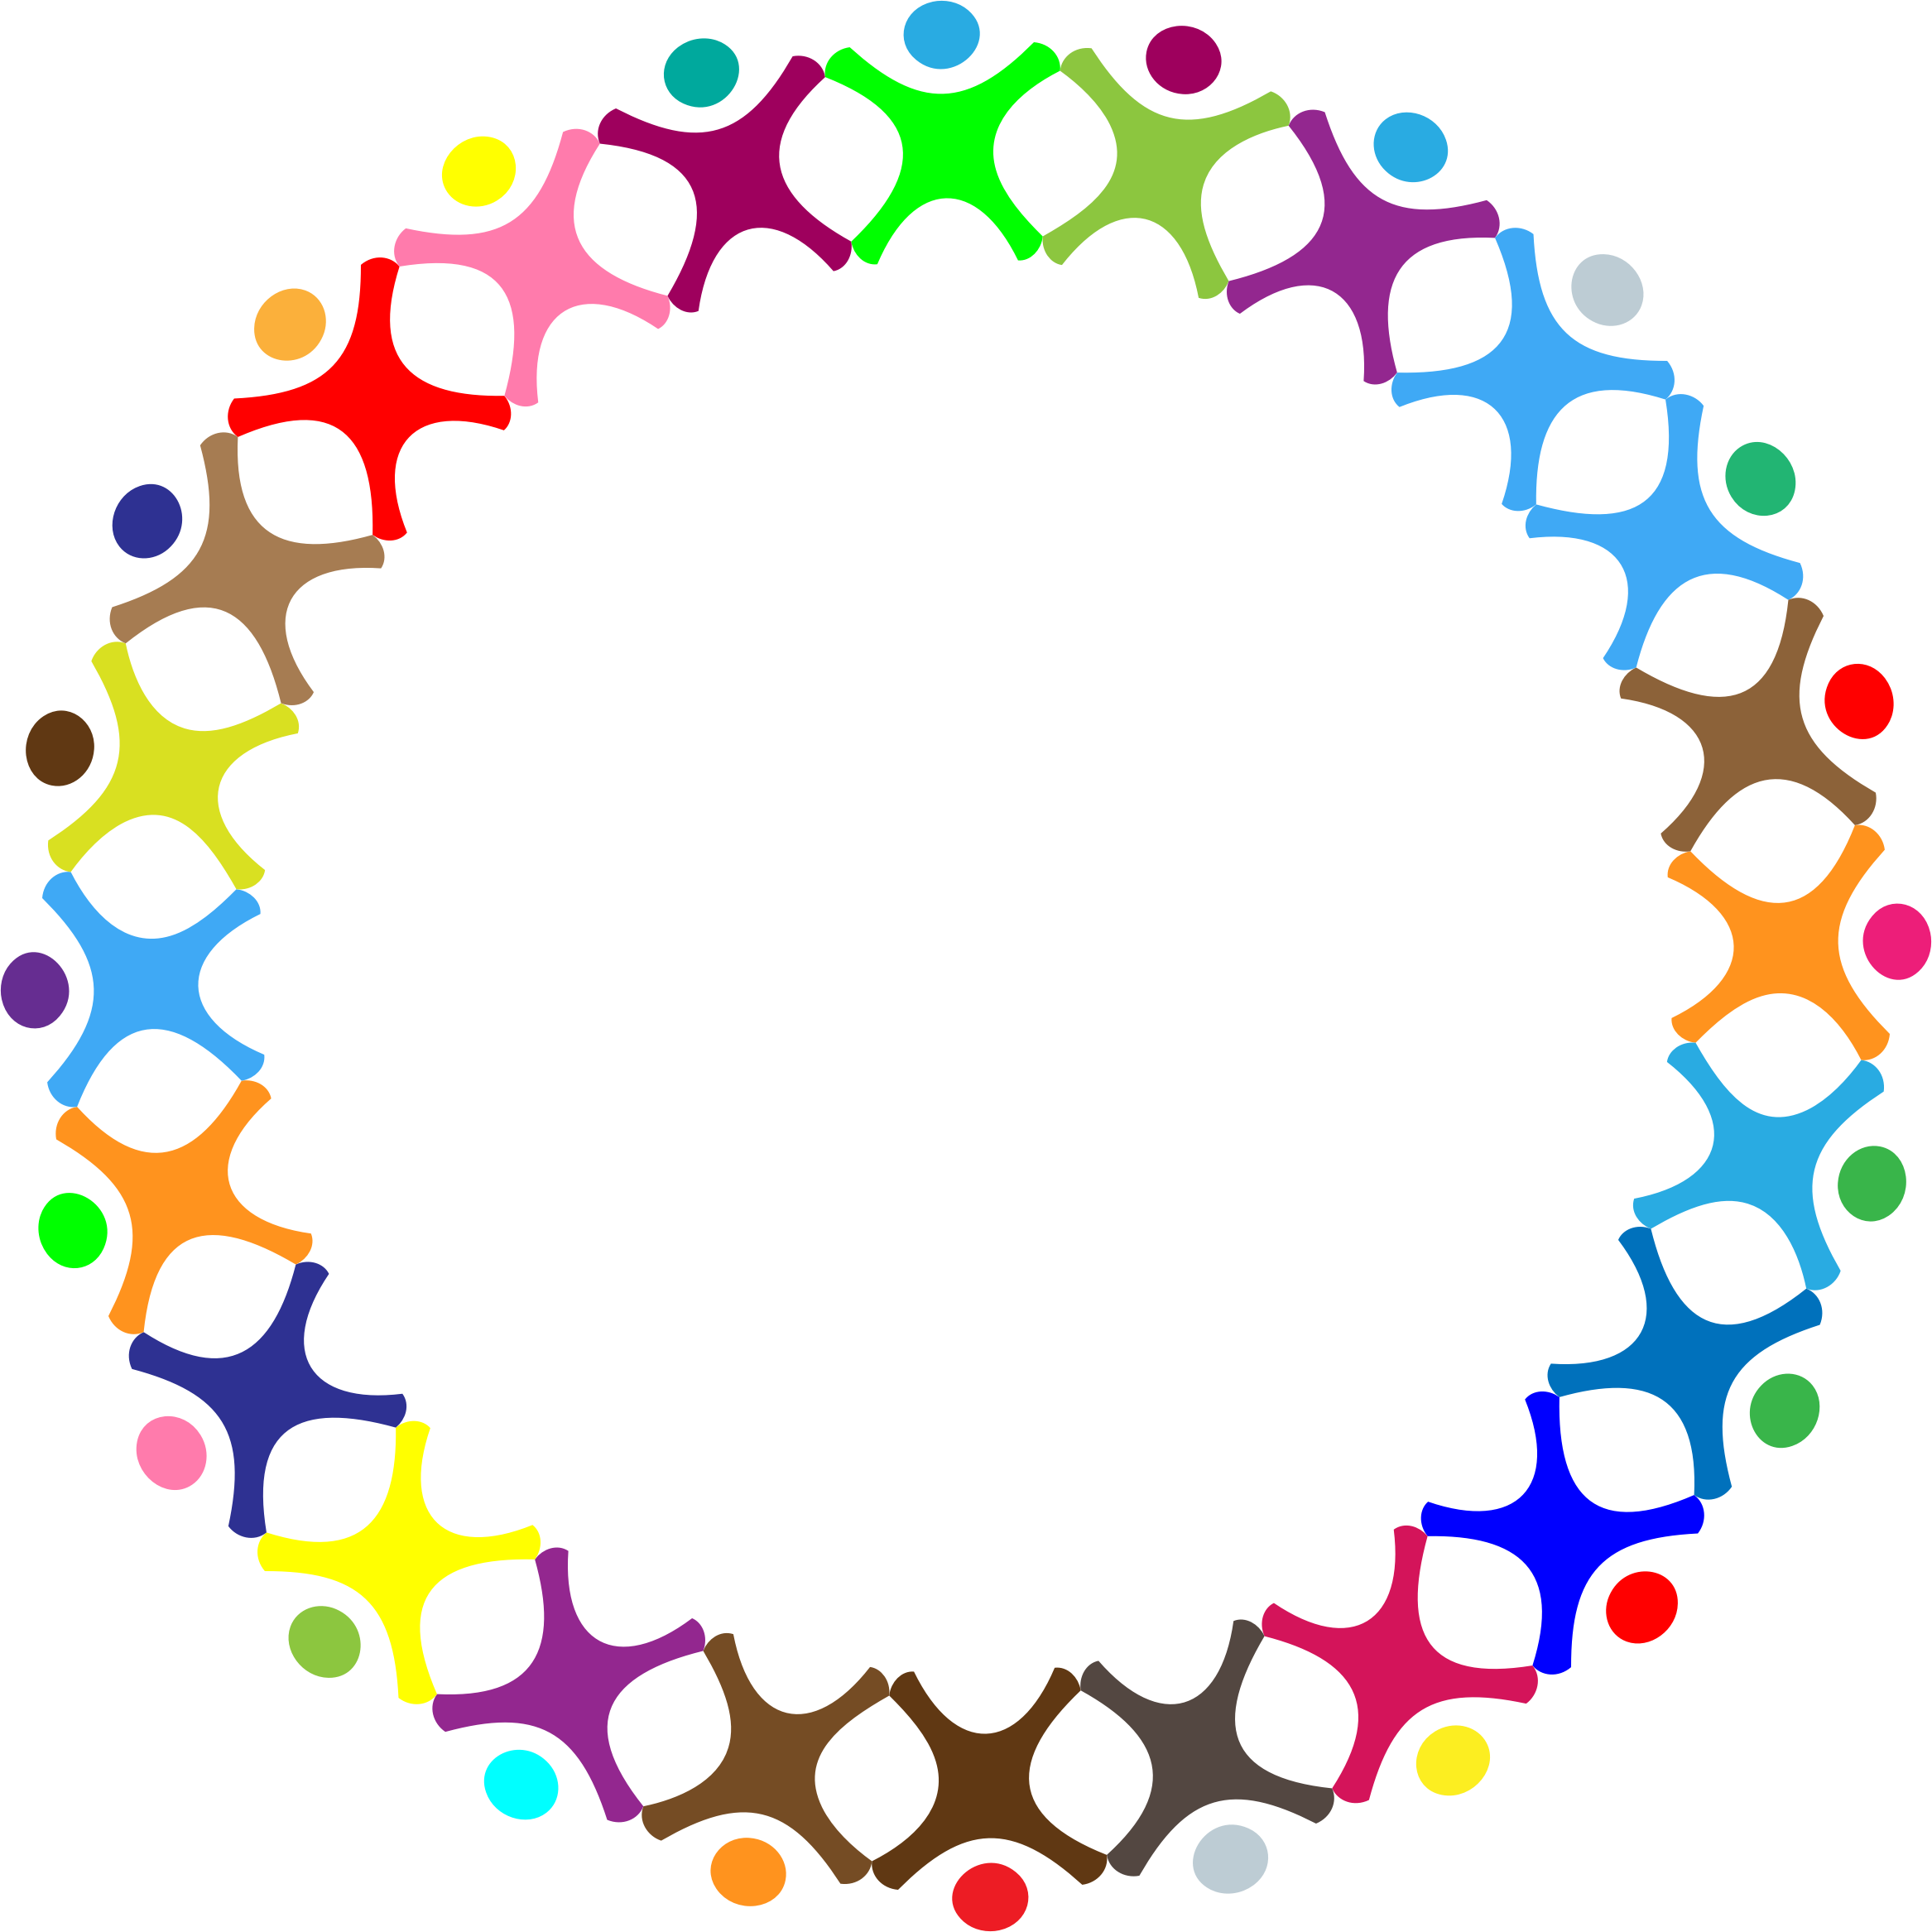 Abstract circle png. Clipart people prismatic big